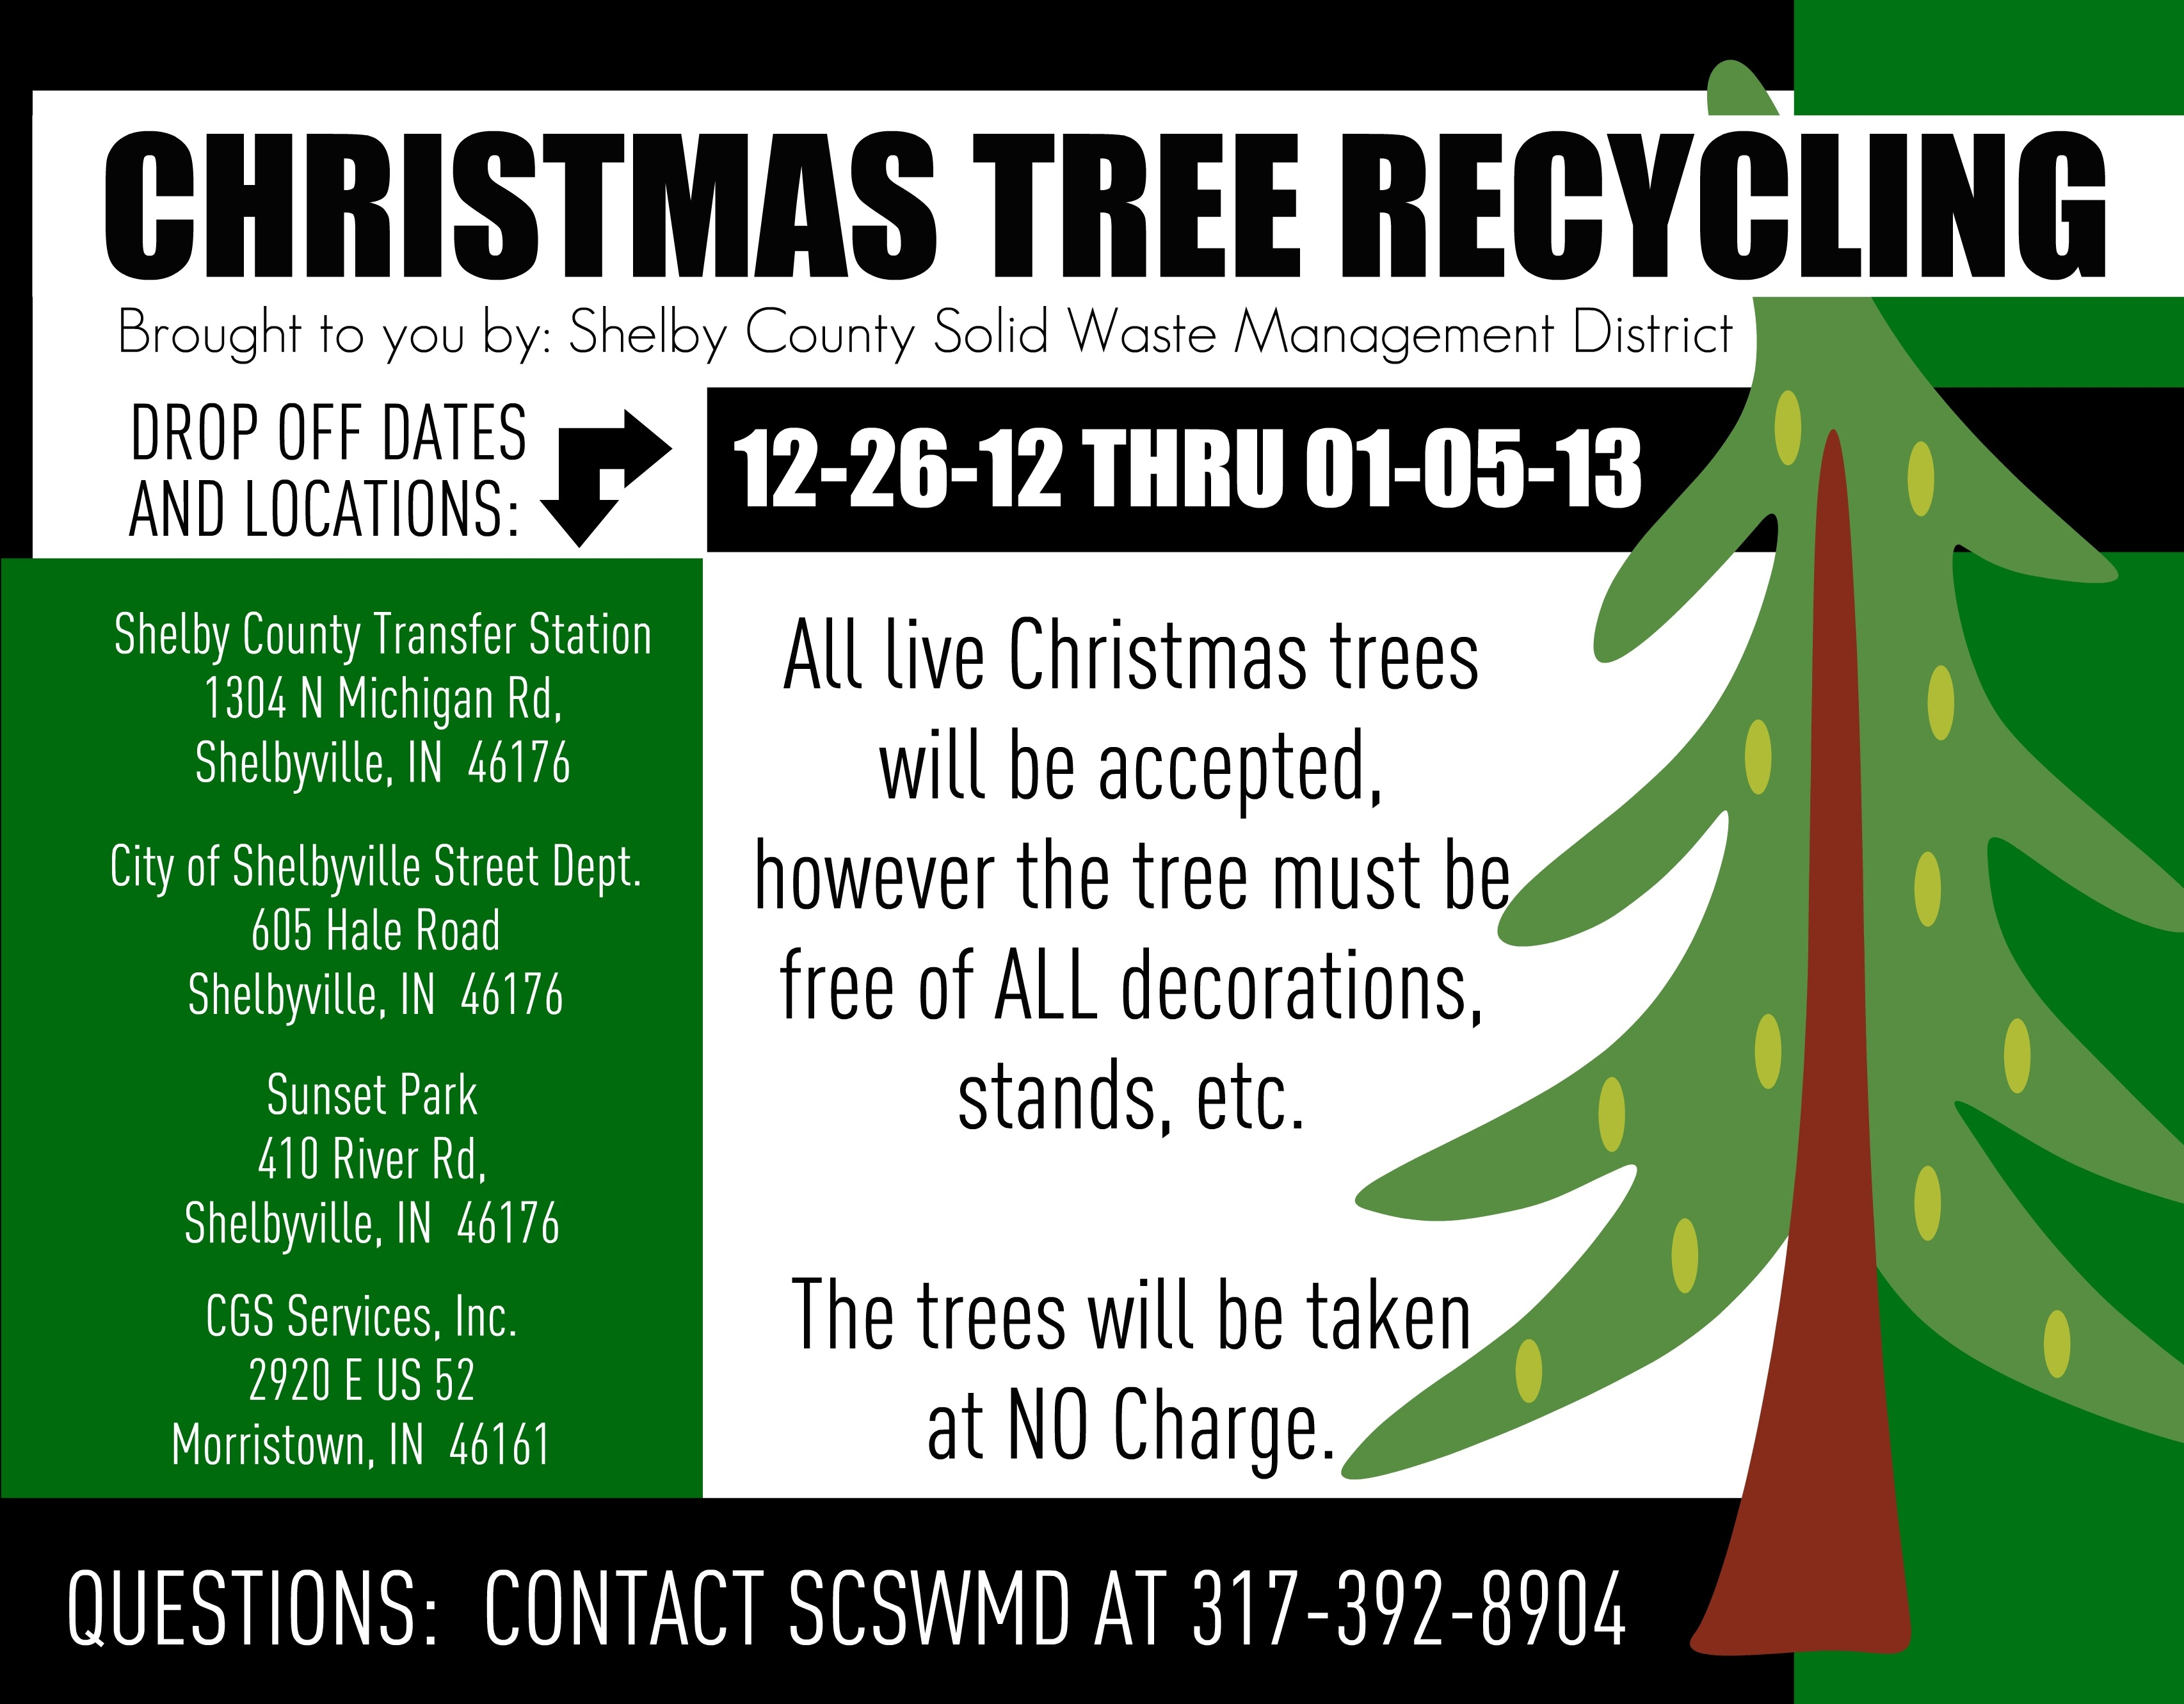 CHRISTMAS TREE RECYCLING 2012